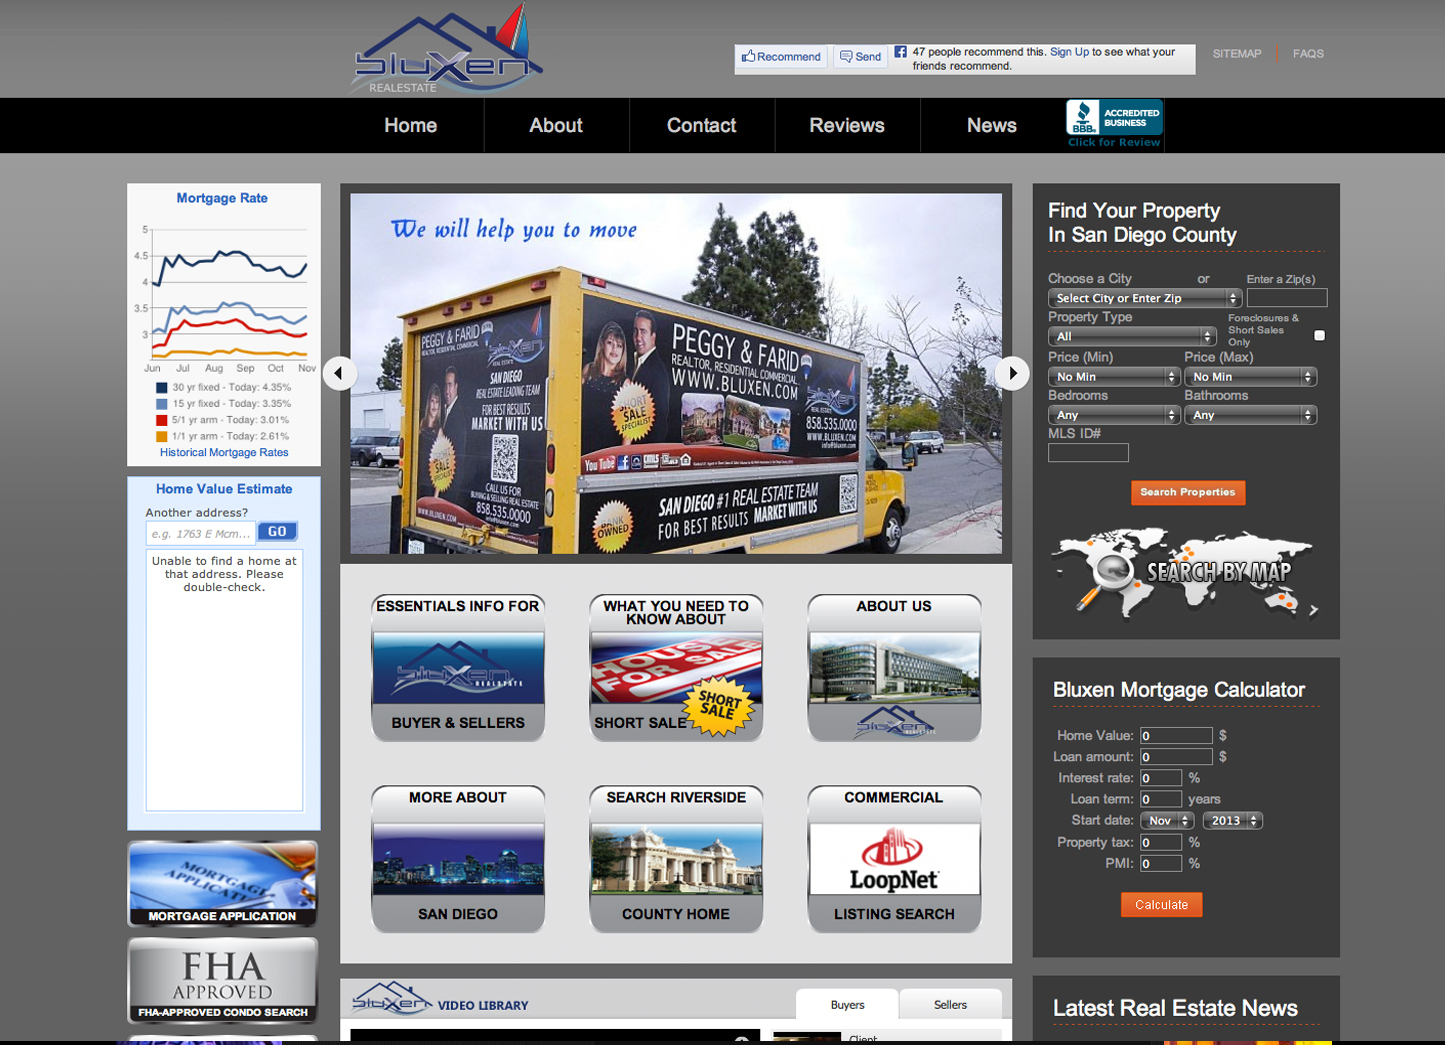 Real Estate: Managed, Designed this Entire Project, wrote the entire flow and Layout, a very small project as a favor to another dear friend. Used: Photoshop, Illustrator, Wordpress & Custom widgets, HTML5 & CSS3/